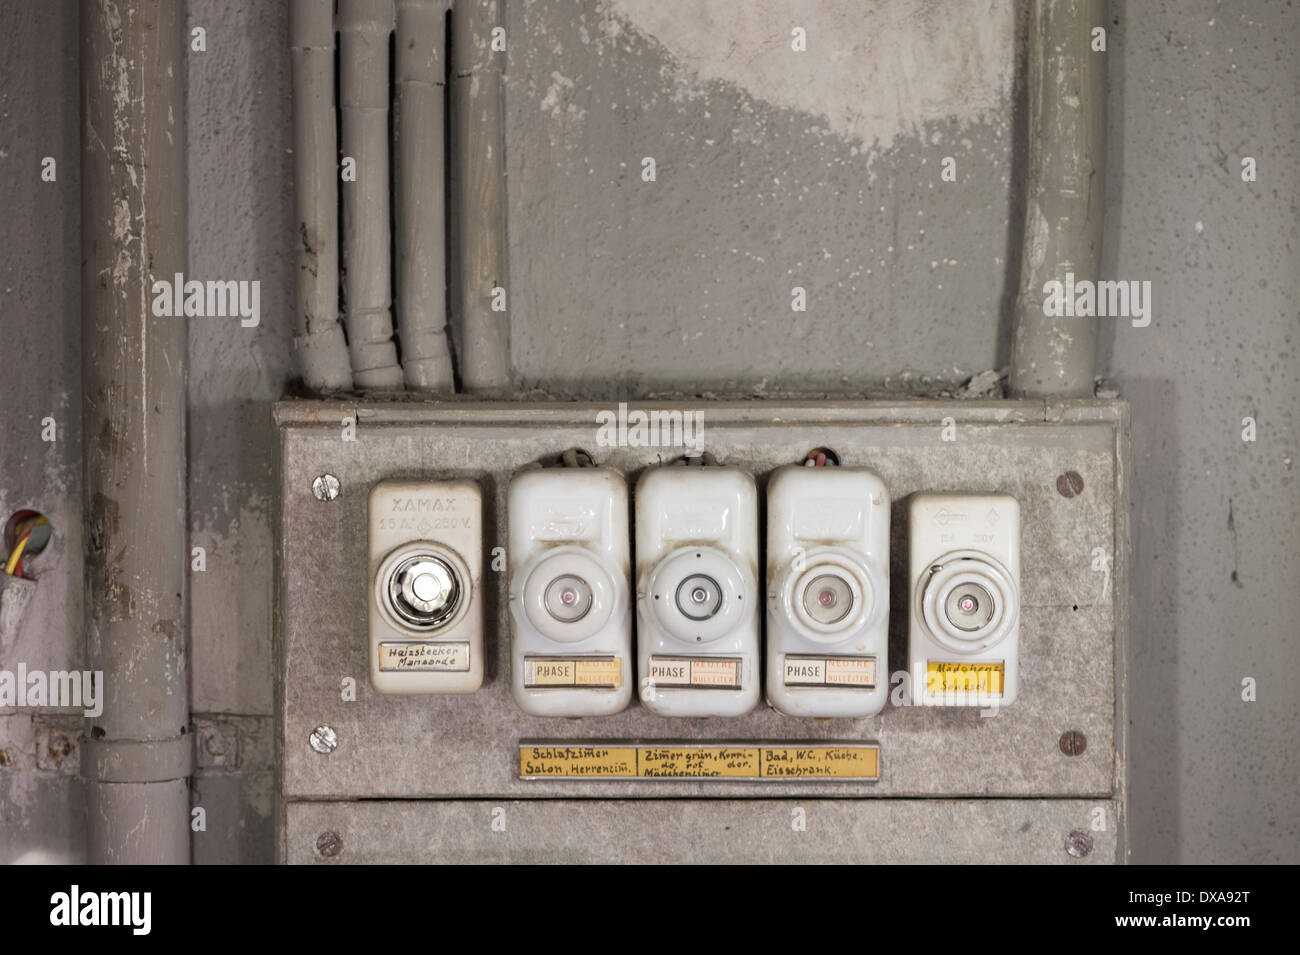 House Fuse Box Wiring Library Older Electrical Boxes Amusing Old Pictures Best Image